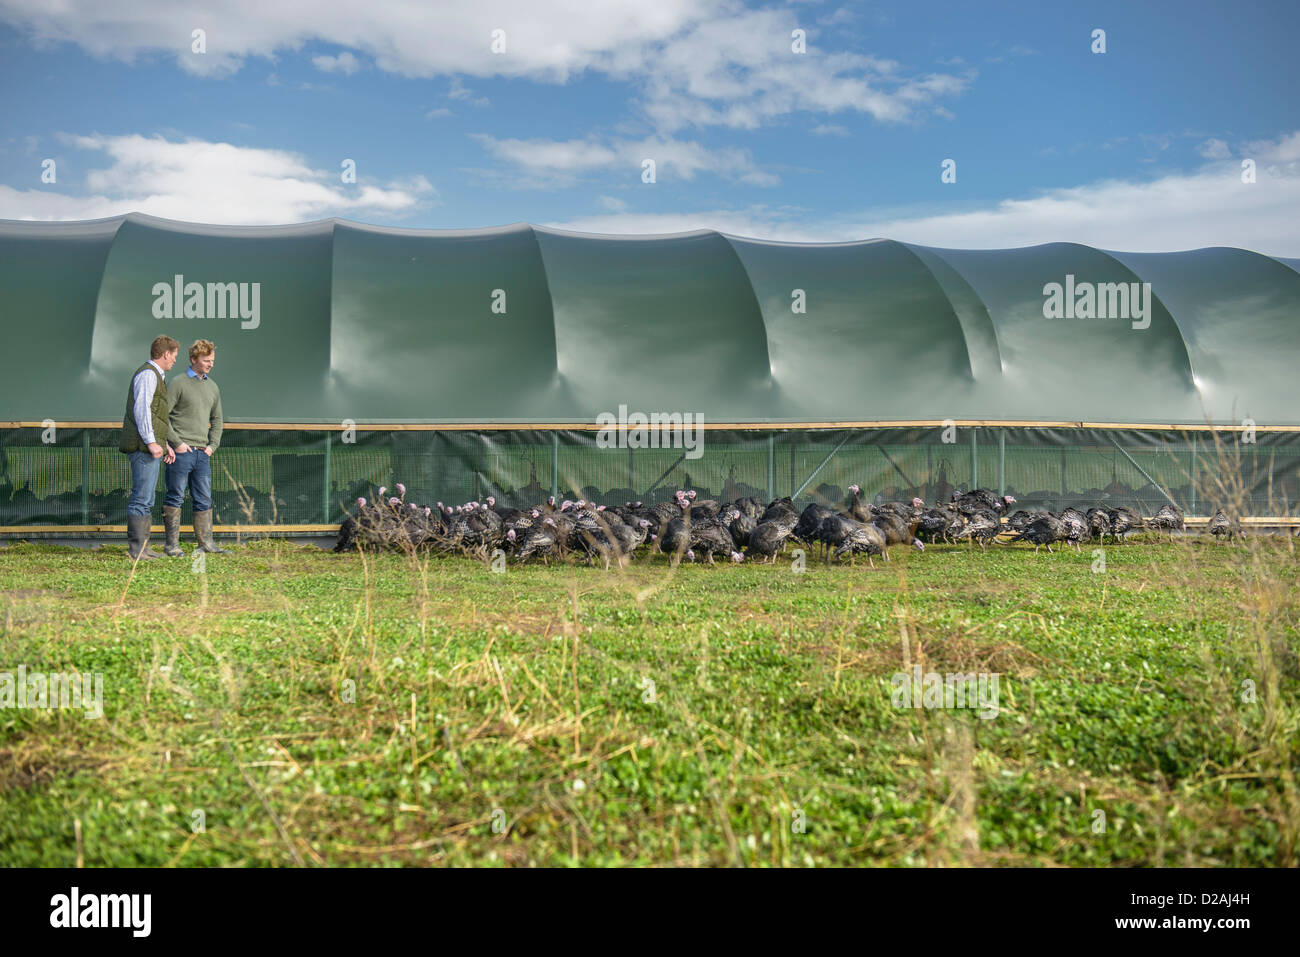 Farmers with turkeys outside barn - Stock Image